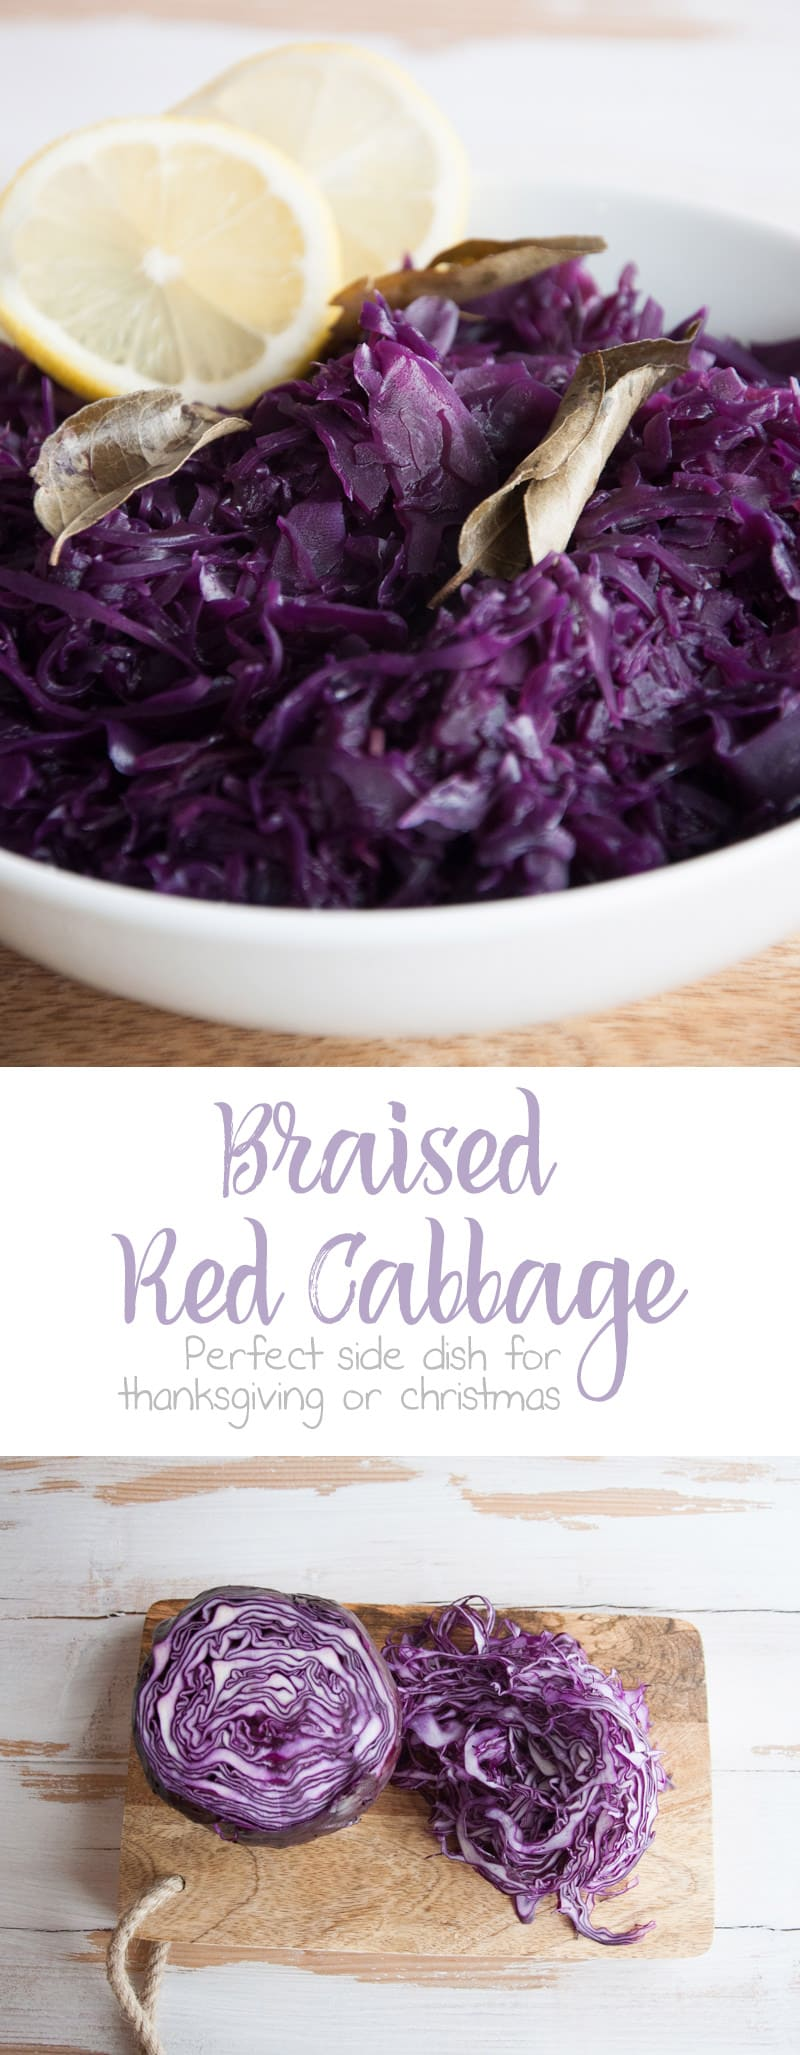 Braised Red Cabbage | ElephantasticVegan.com